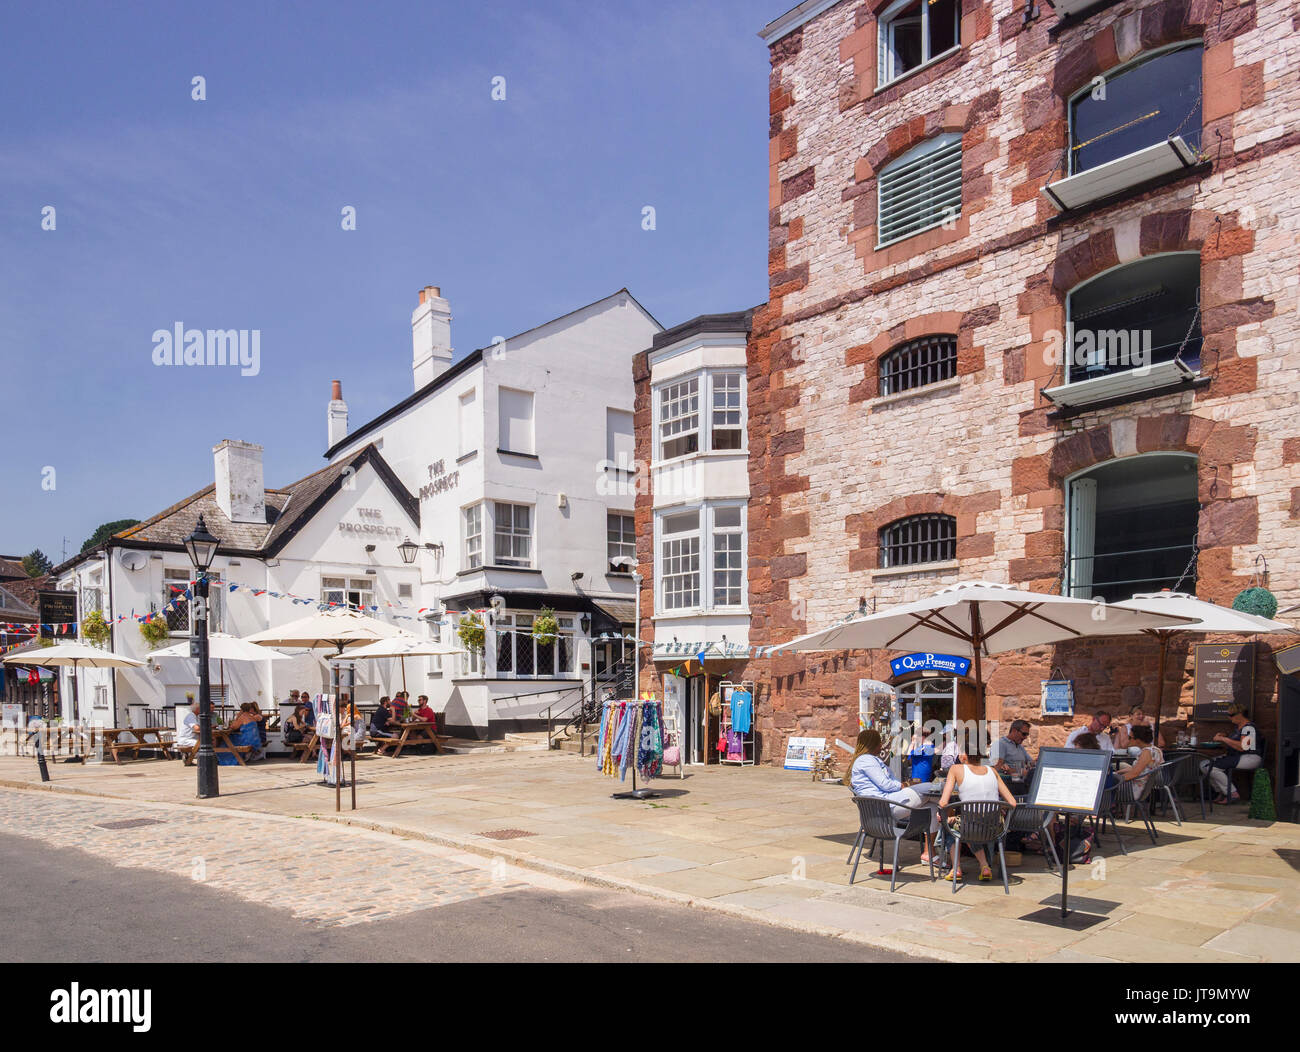 21 June 2017: Exeter, Devon, England, UK - Pubs and restaurants at Exeter Quay on a fine summer day. Stock Photo